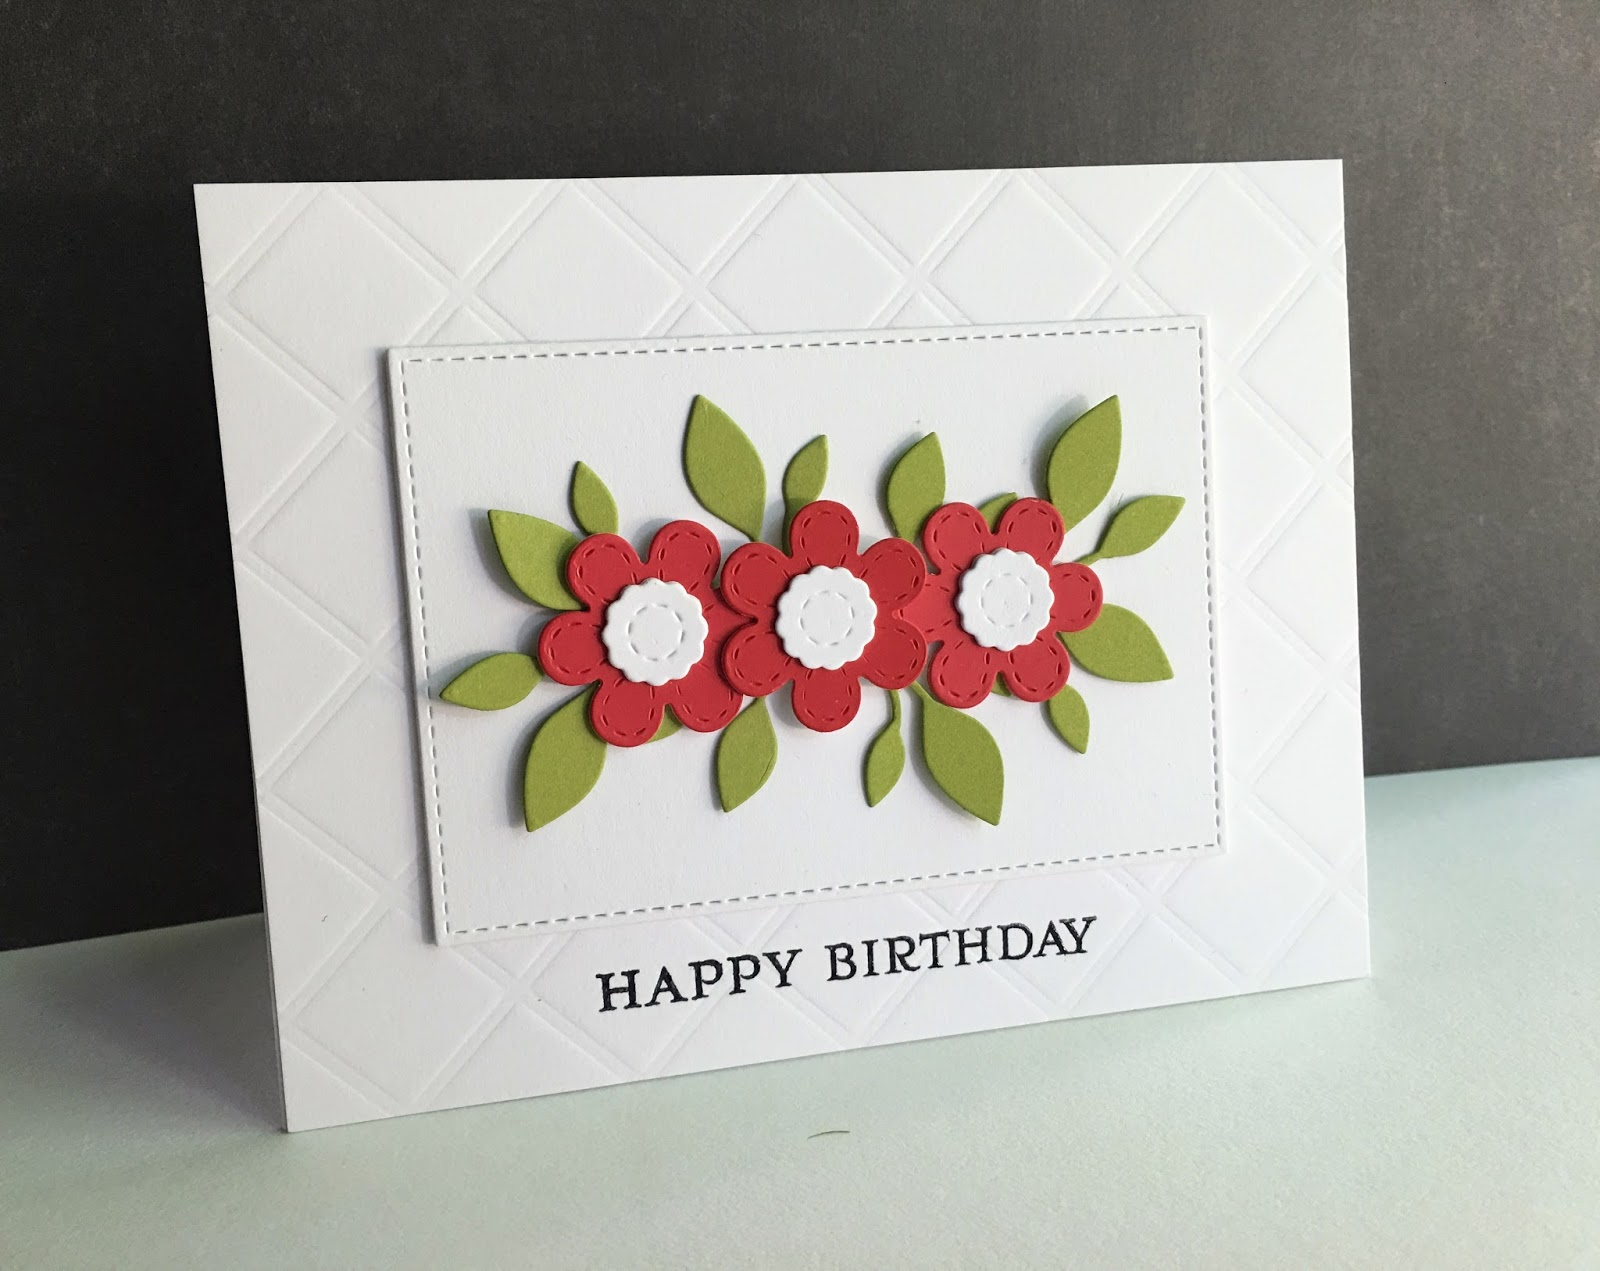 i'm in haven another stitched happy birthday